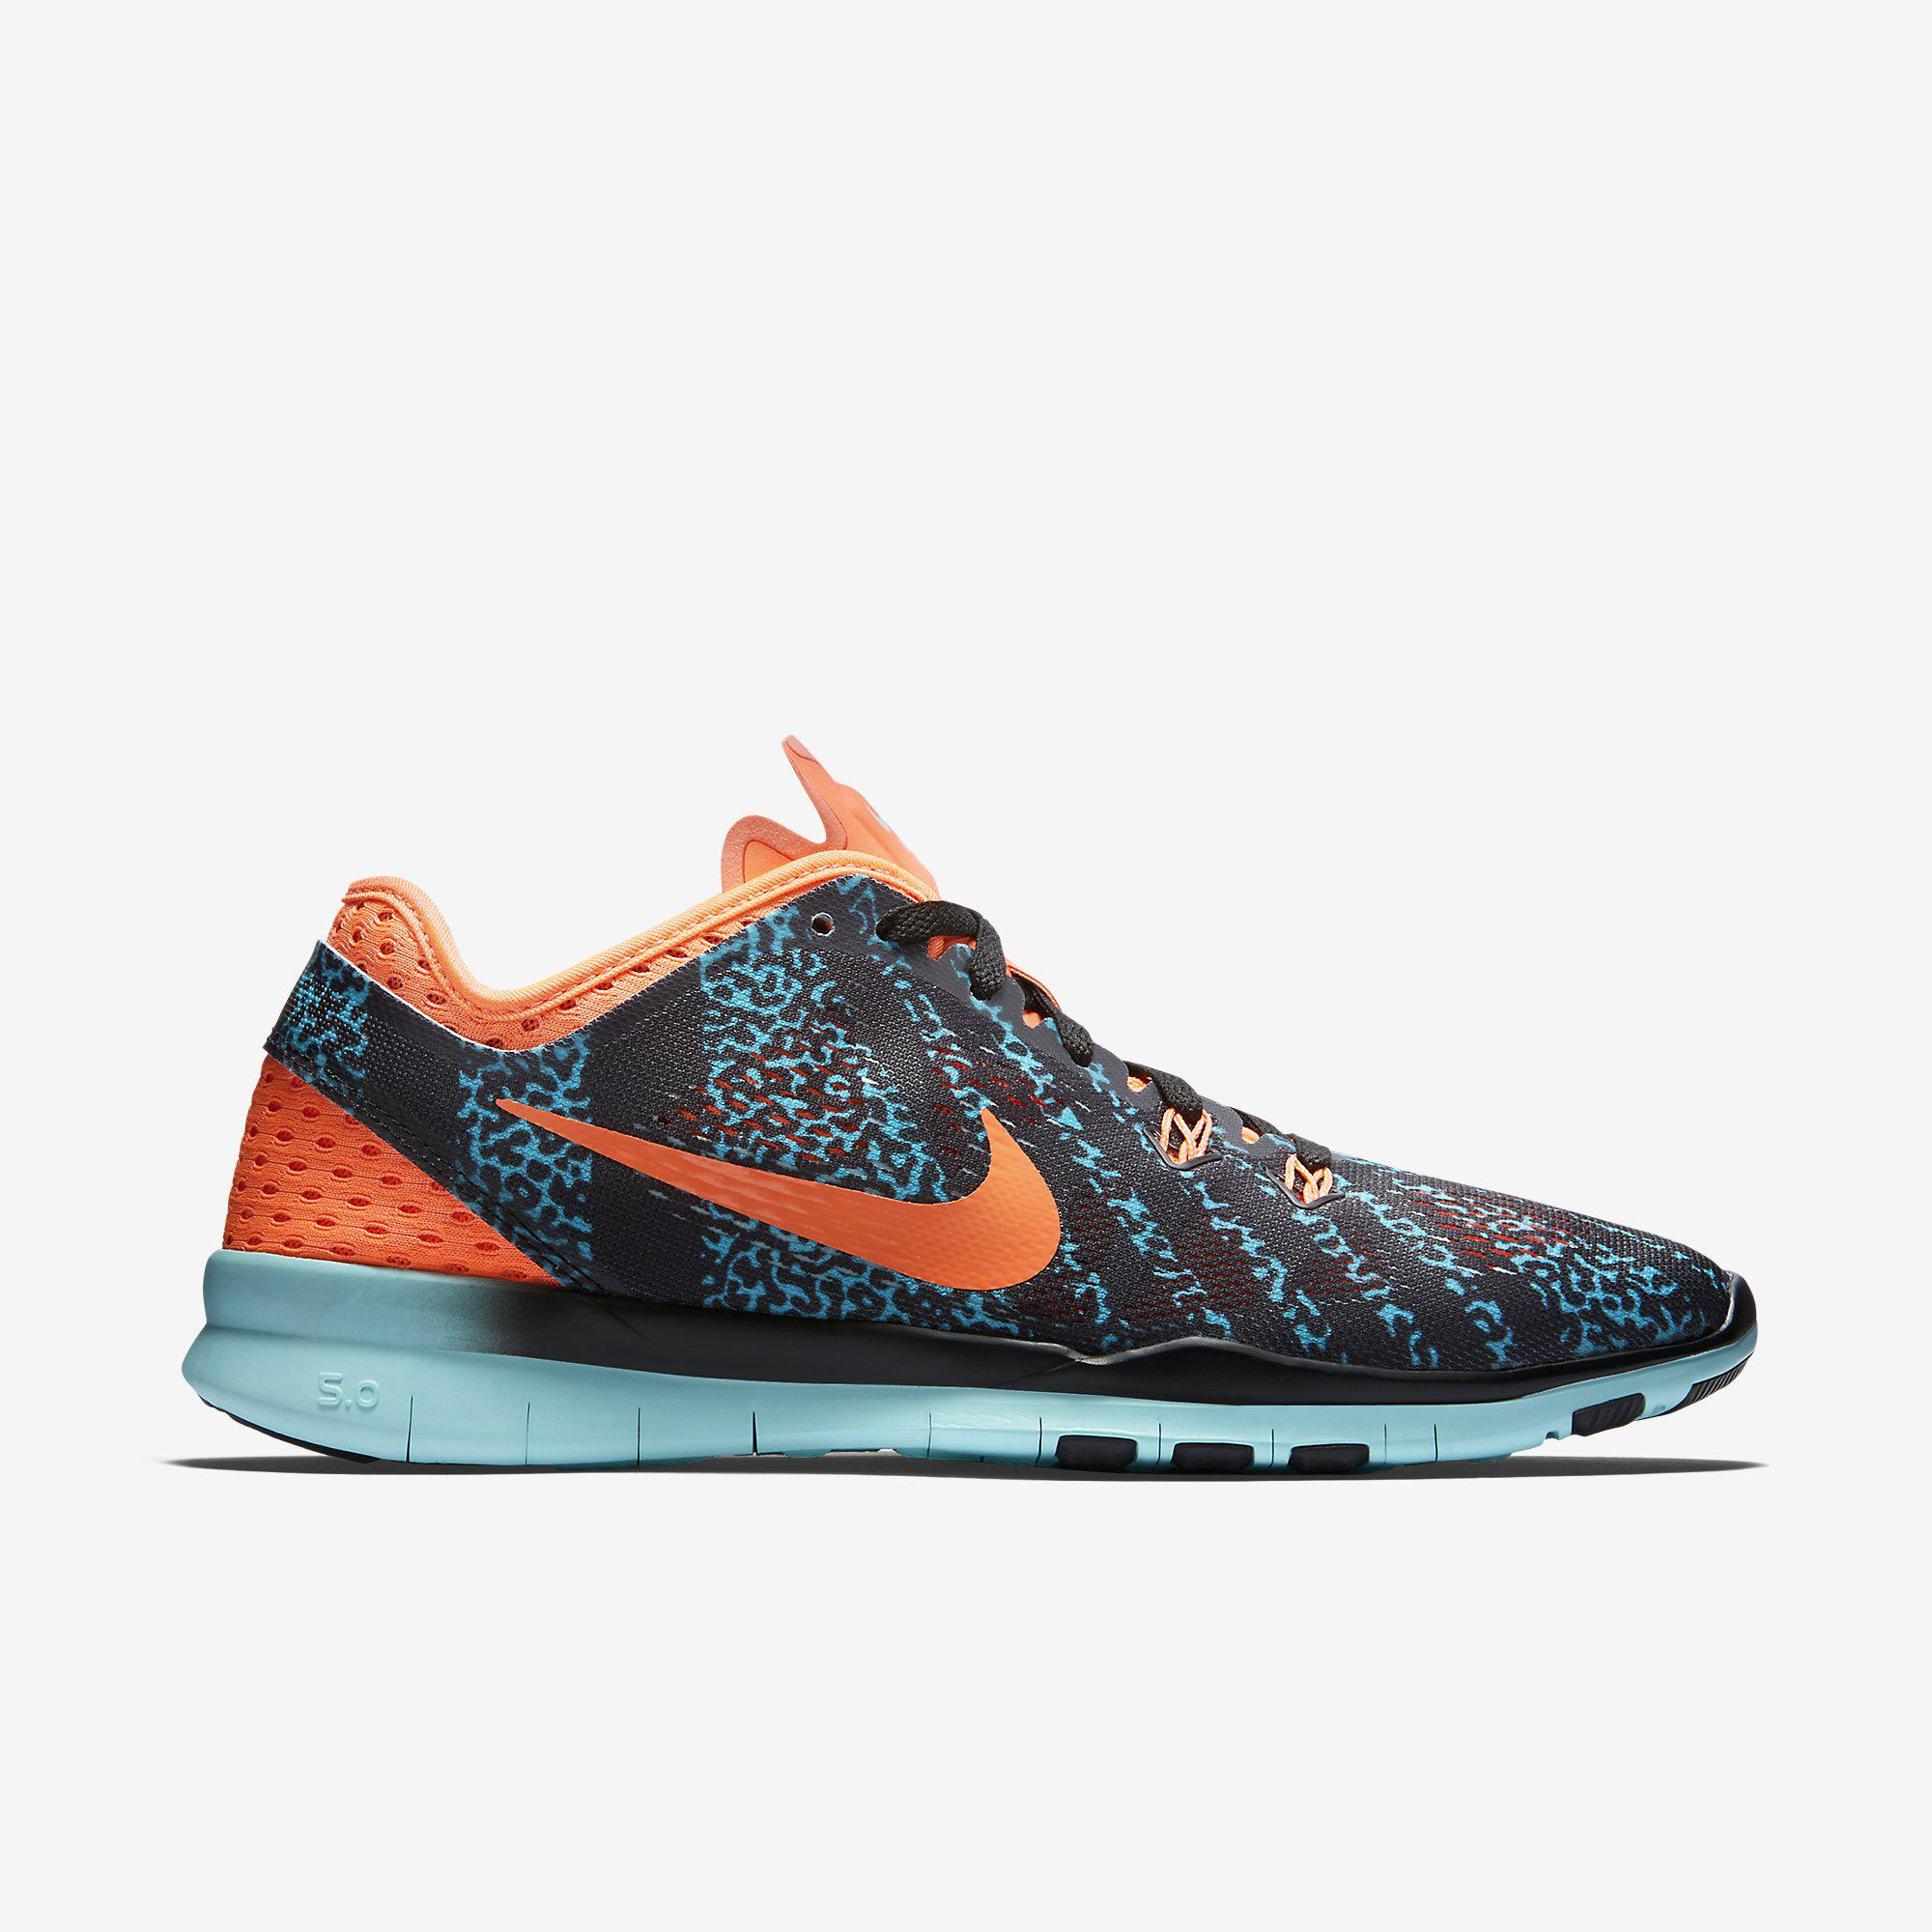 8cbf9c13d956 Nike Womens Free 5.0 TR Printed Training Shoes - Black Hot Lava Artisan  Teal - Tennisnuts.com